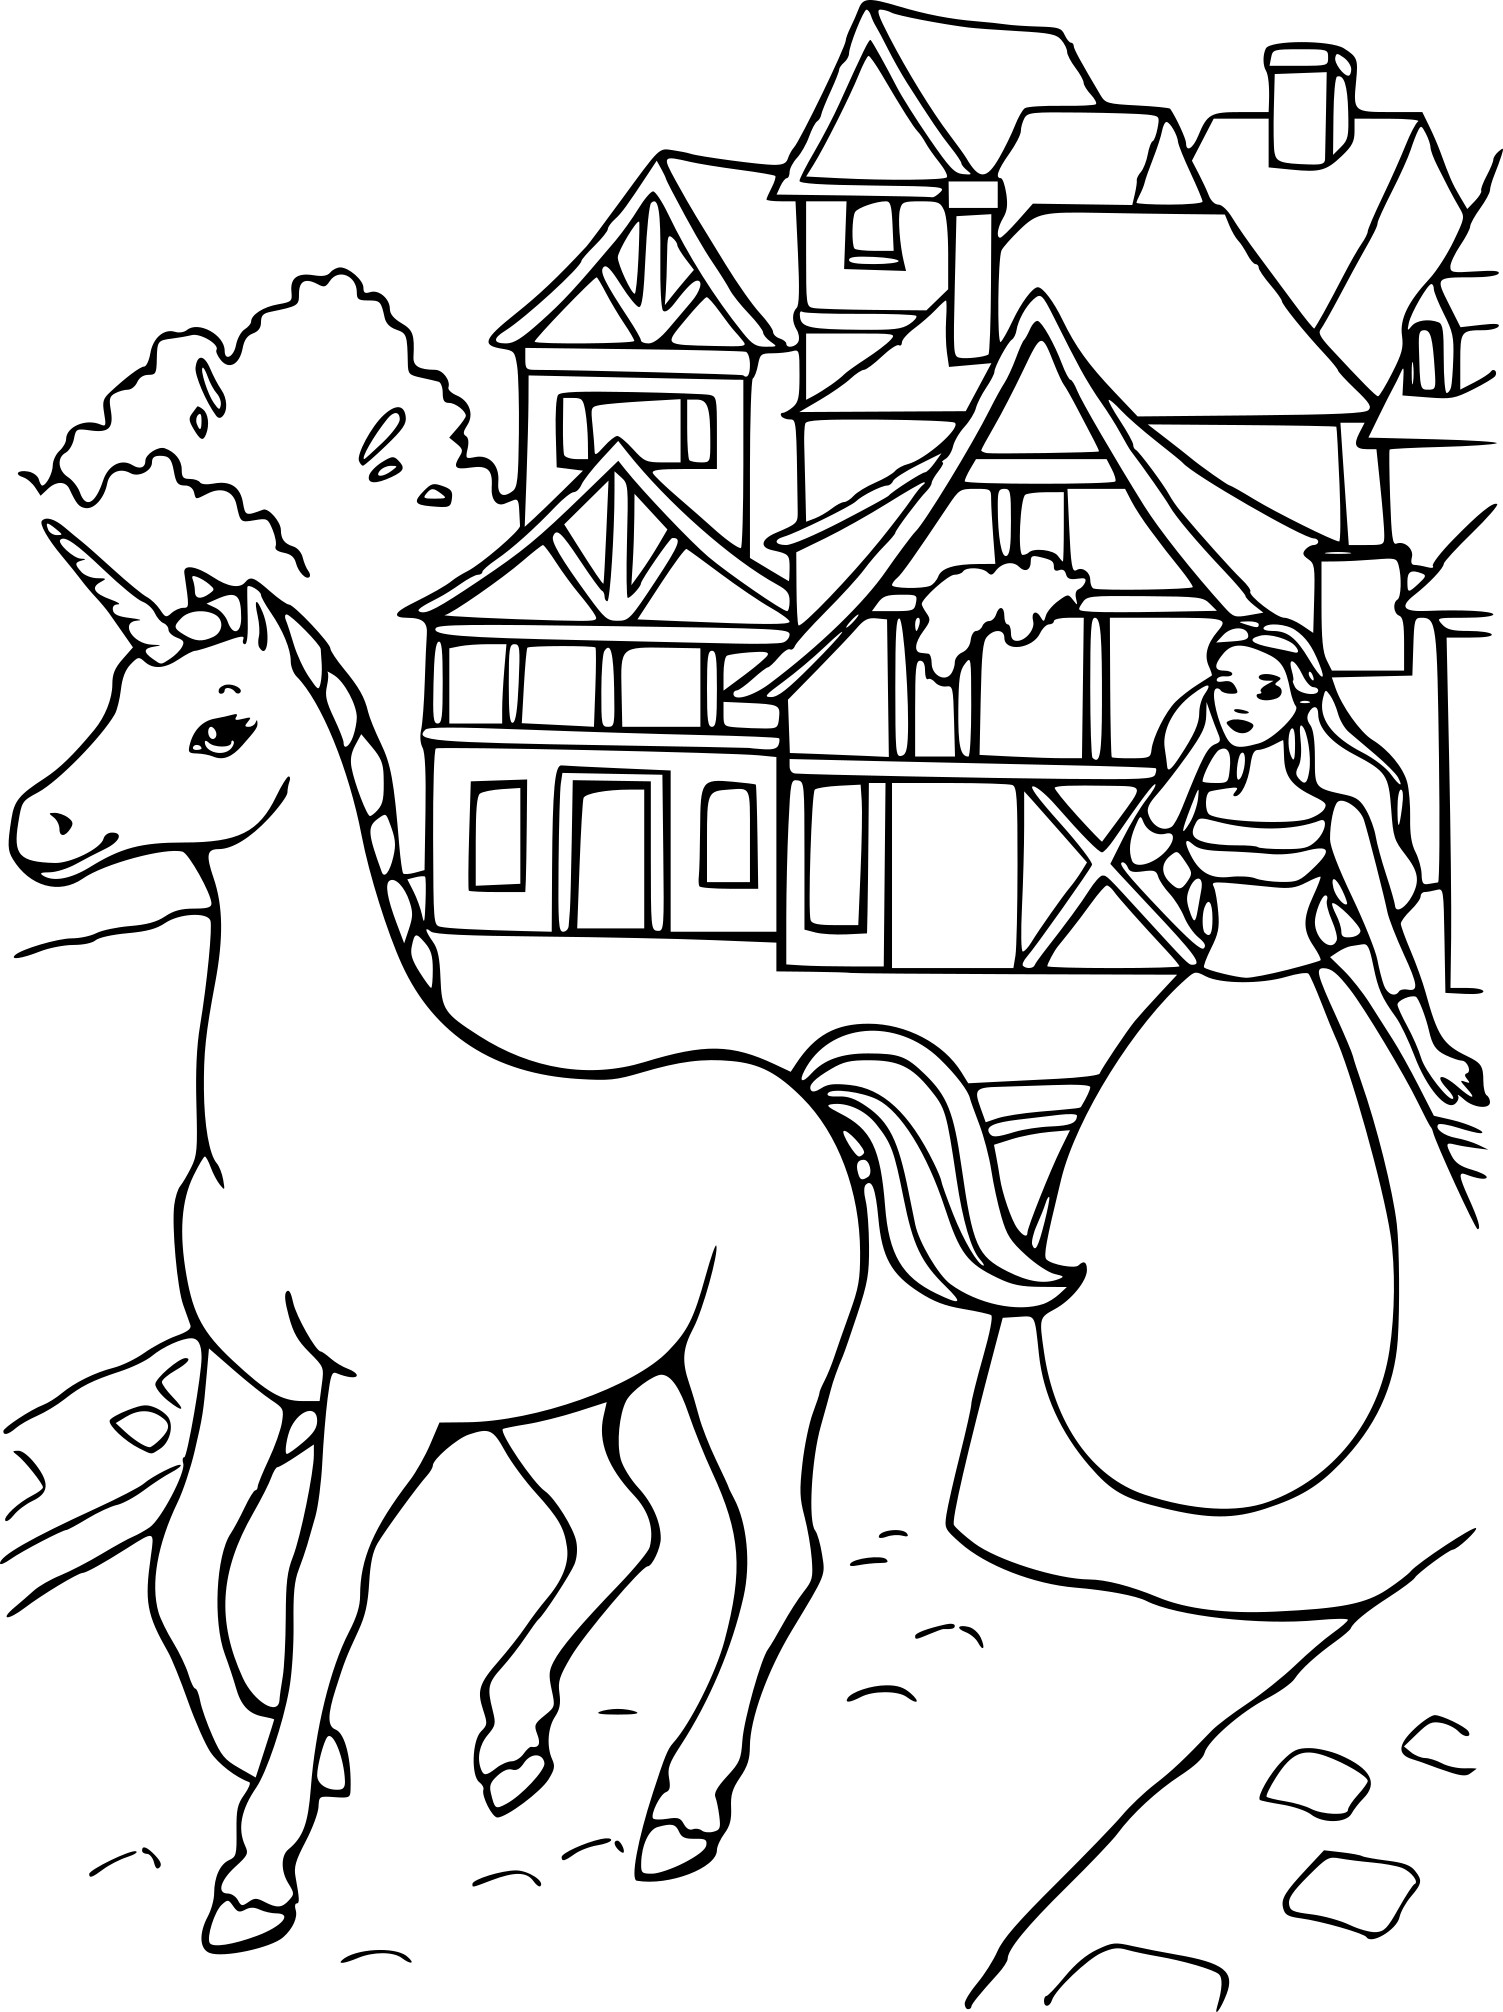 Barbie has a unicorn Coloring Page